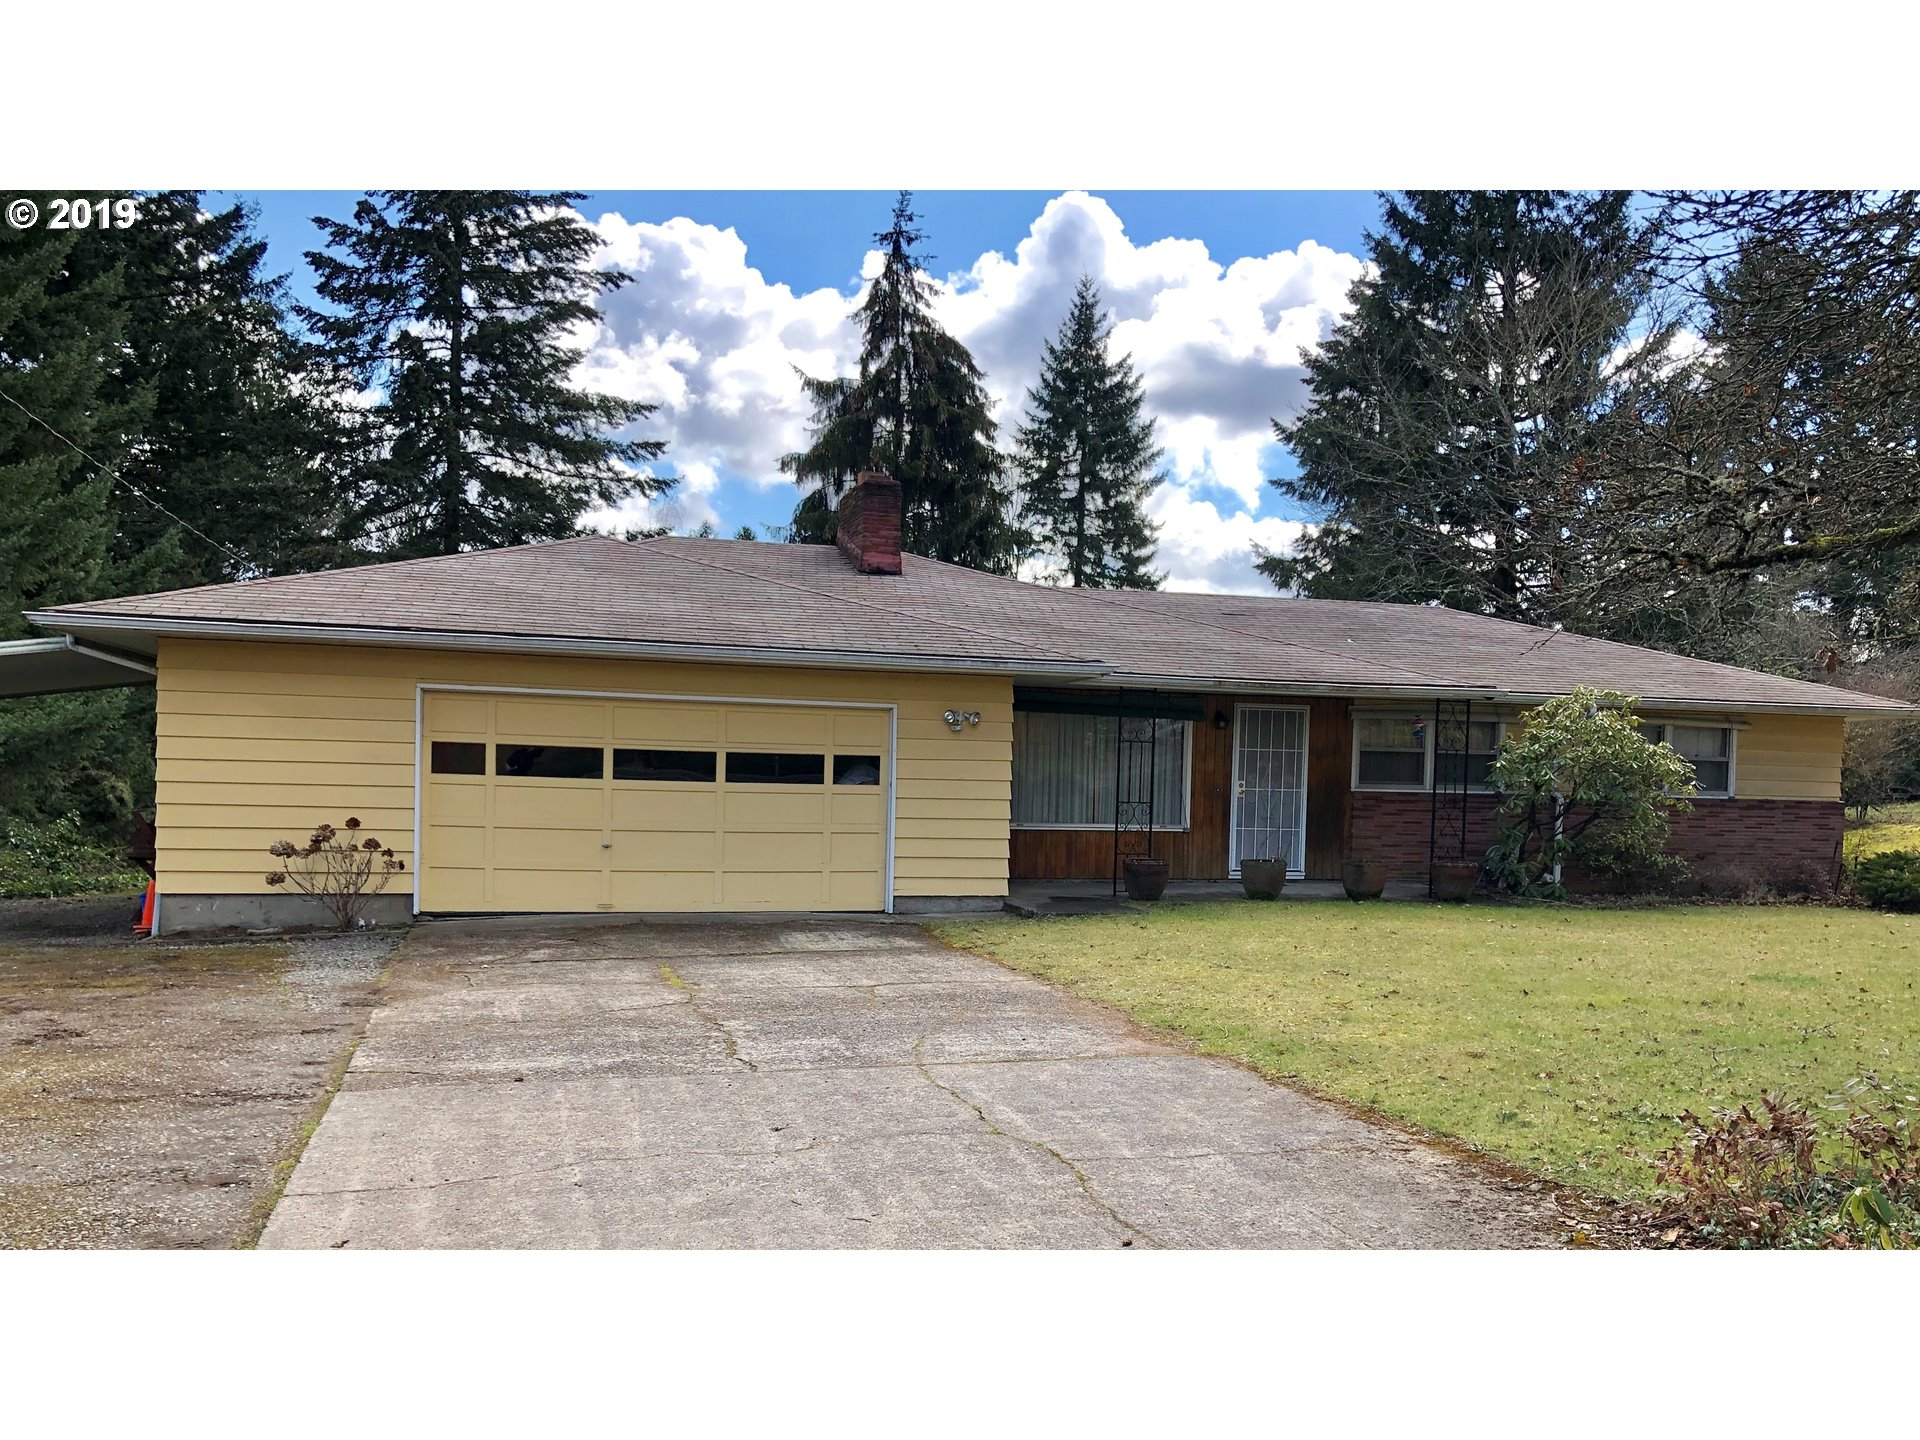 Great potential with this rare one-level fixer on oversized .62 acre lot with possible 2nd lot addition. Minutes from I-205, 99E and Hwy 224.  Buyer to perform due diligence. Priced AS-IS. Seller to do no repairs. Ask about land opportunity next door too.